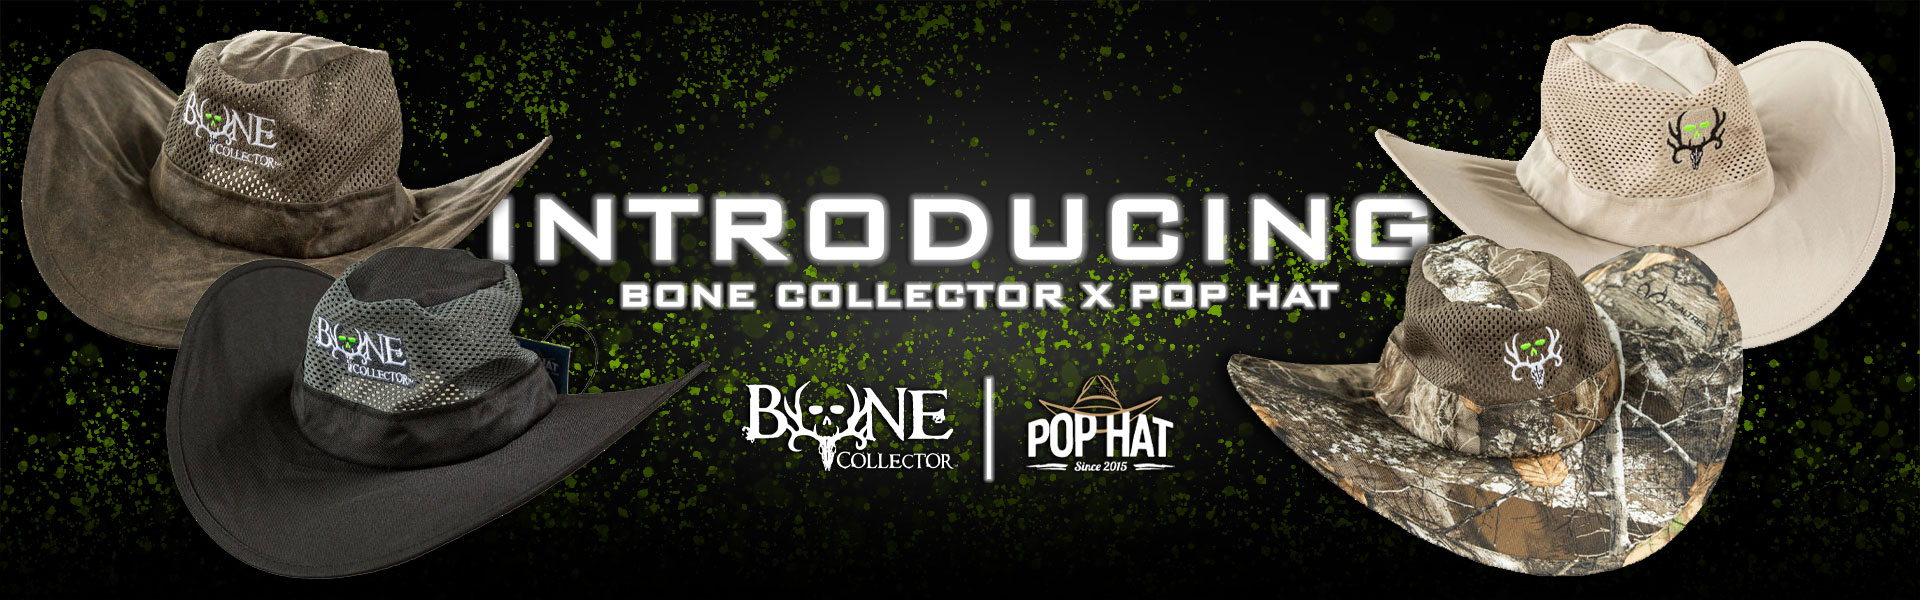 bone-collector-x-pop-hat.2.jpg